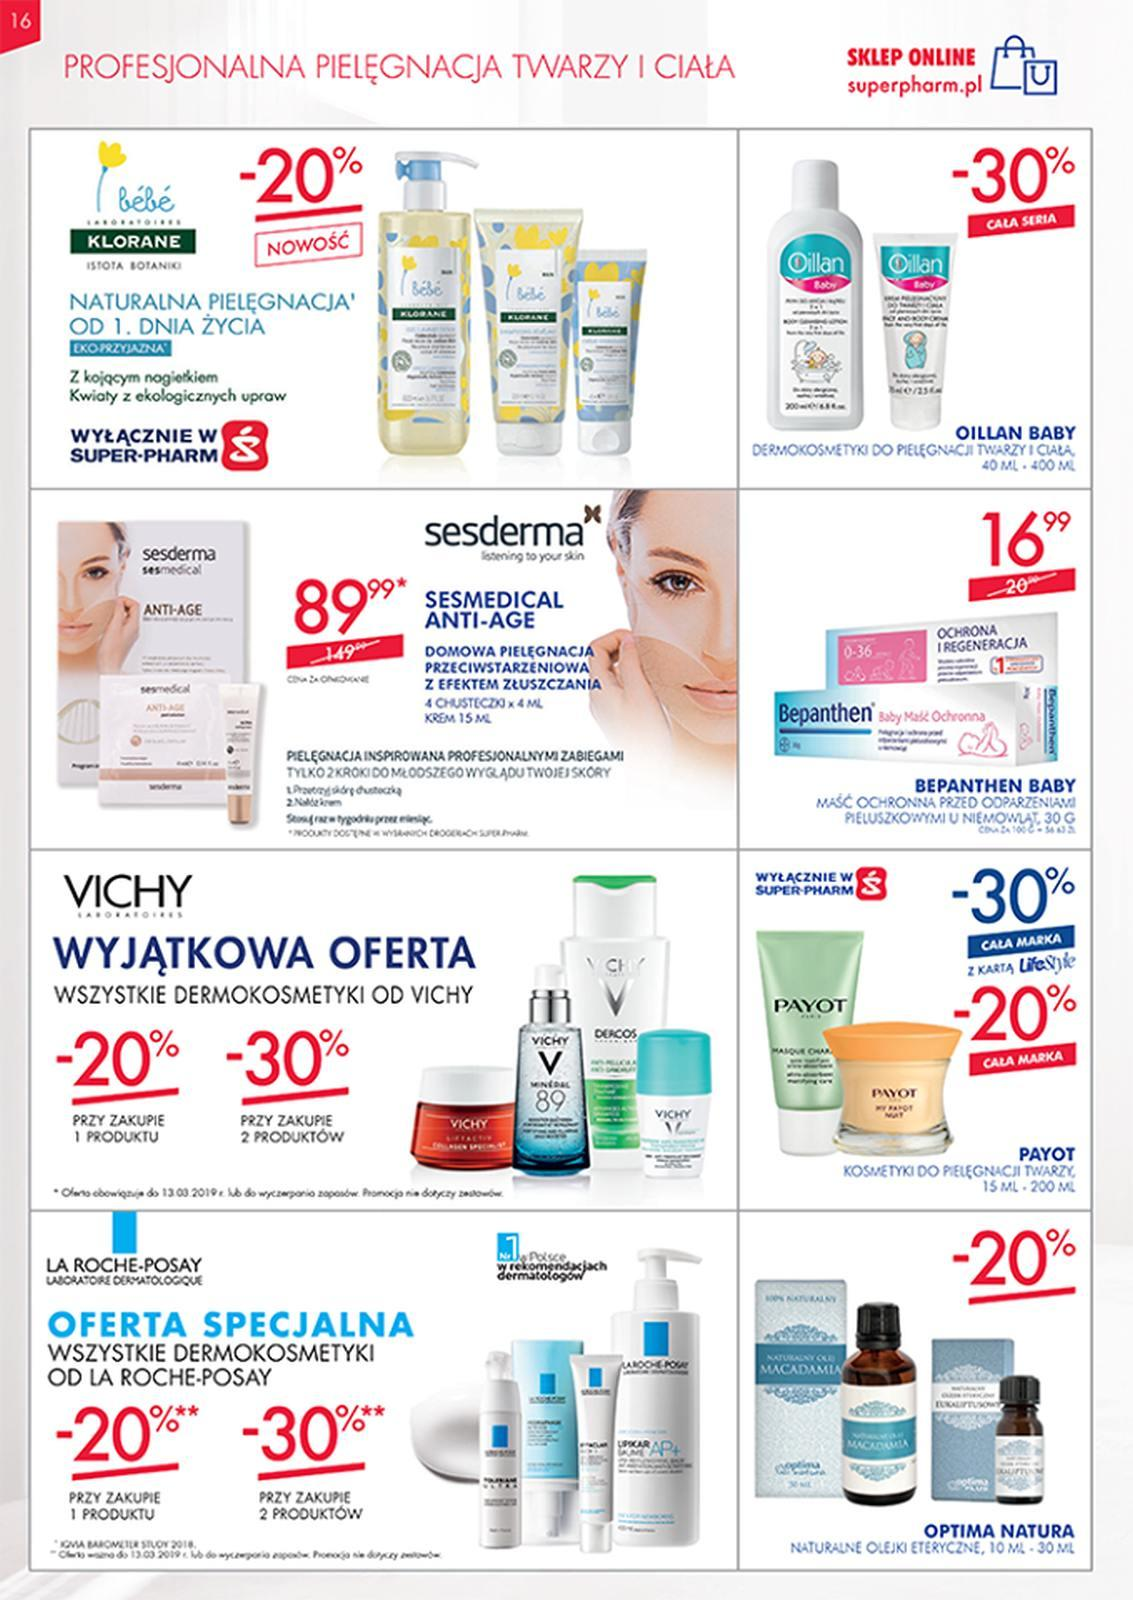 Gazetka promocyjna Superpharm do 13/03/2019 str.16